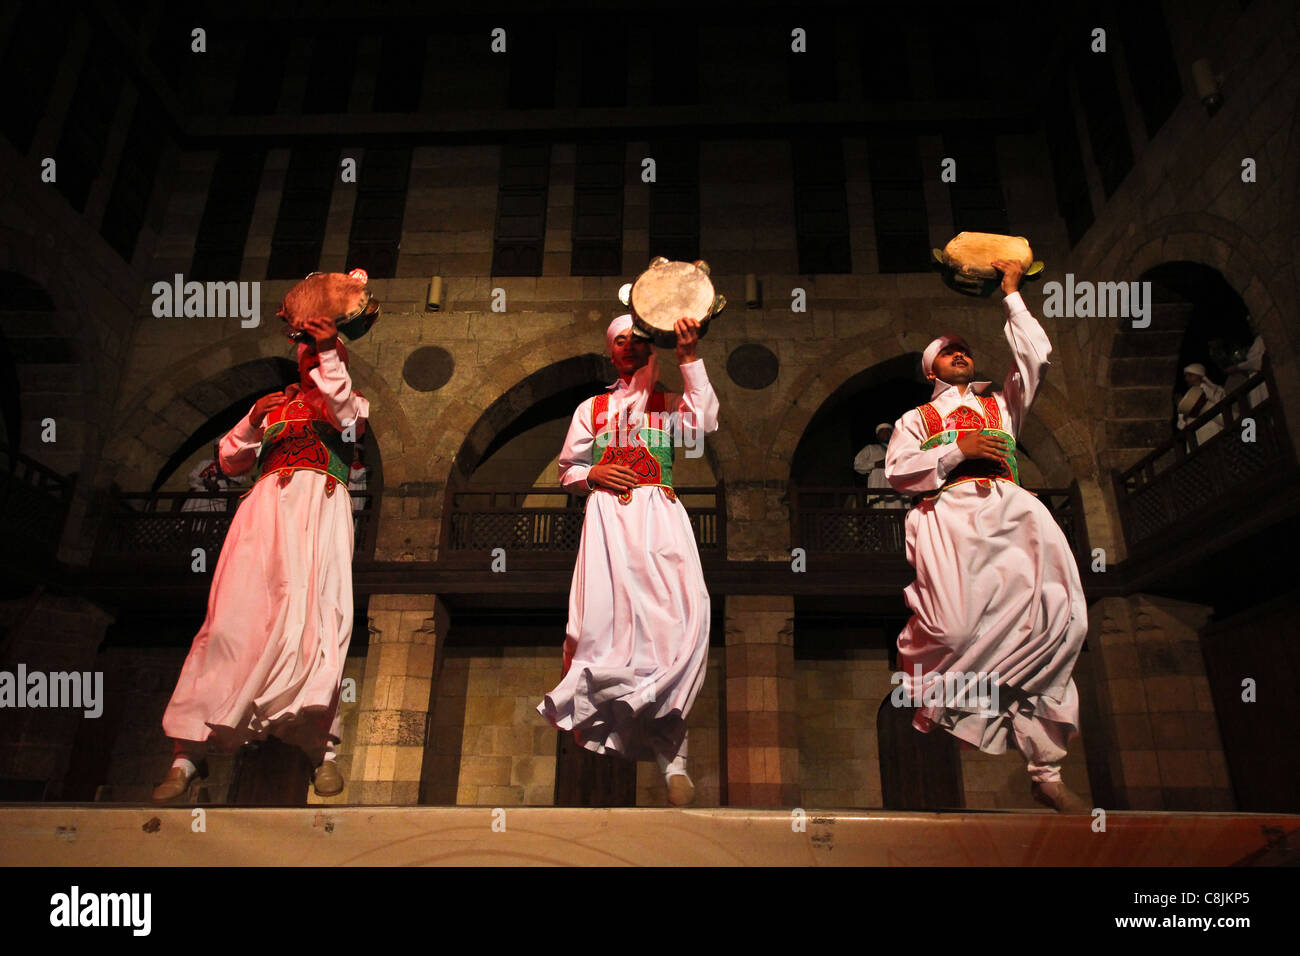 Dervishes perform at the Ghouriyya in Old Cairo Egypt - Stock Image